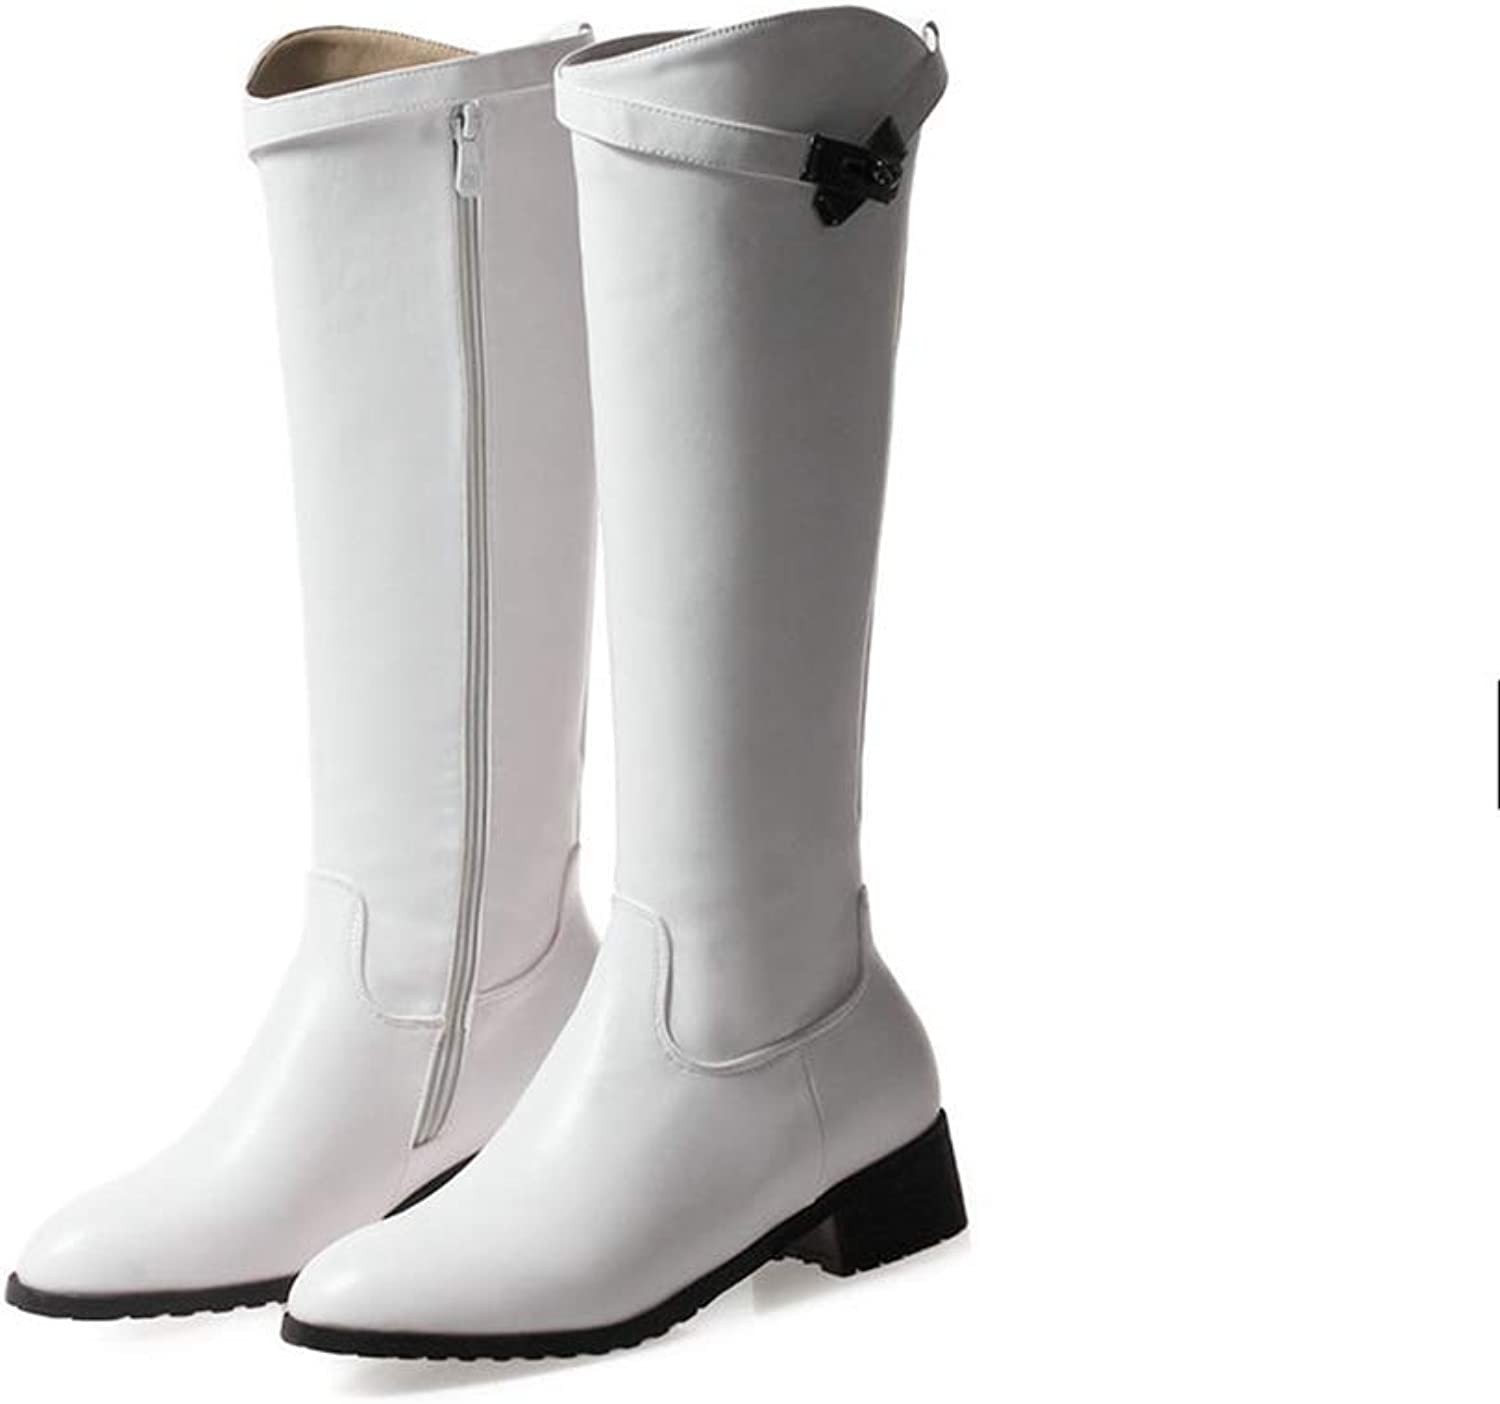 Women Fashion Mid Calf Boots Round Toe Slip-On Square Med Heel Half Boats with Fur Lining